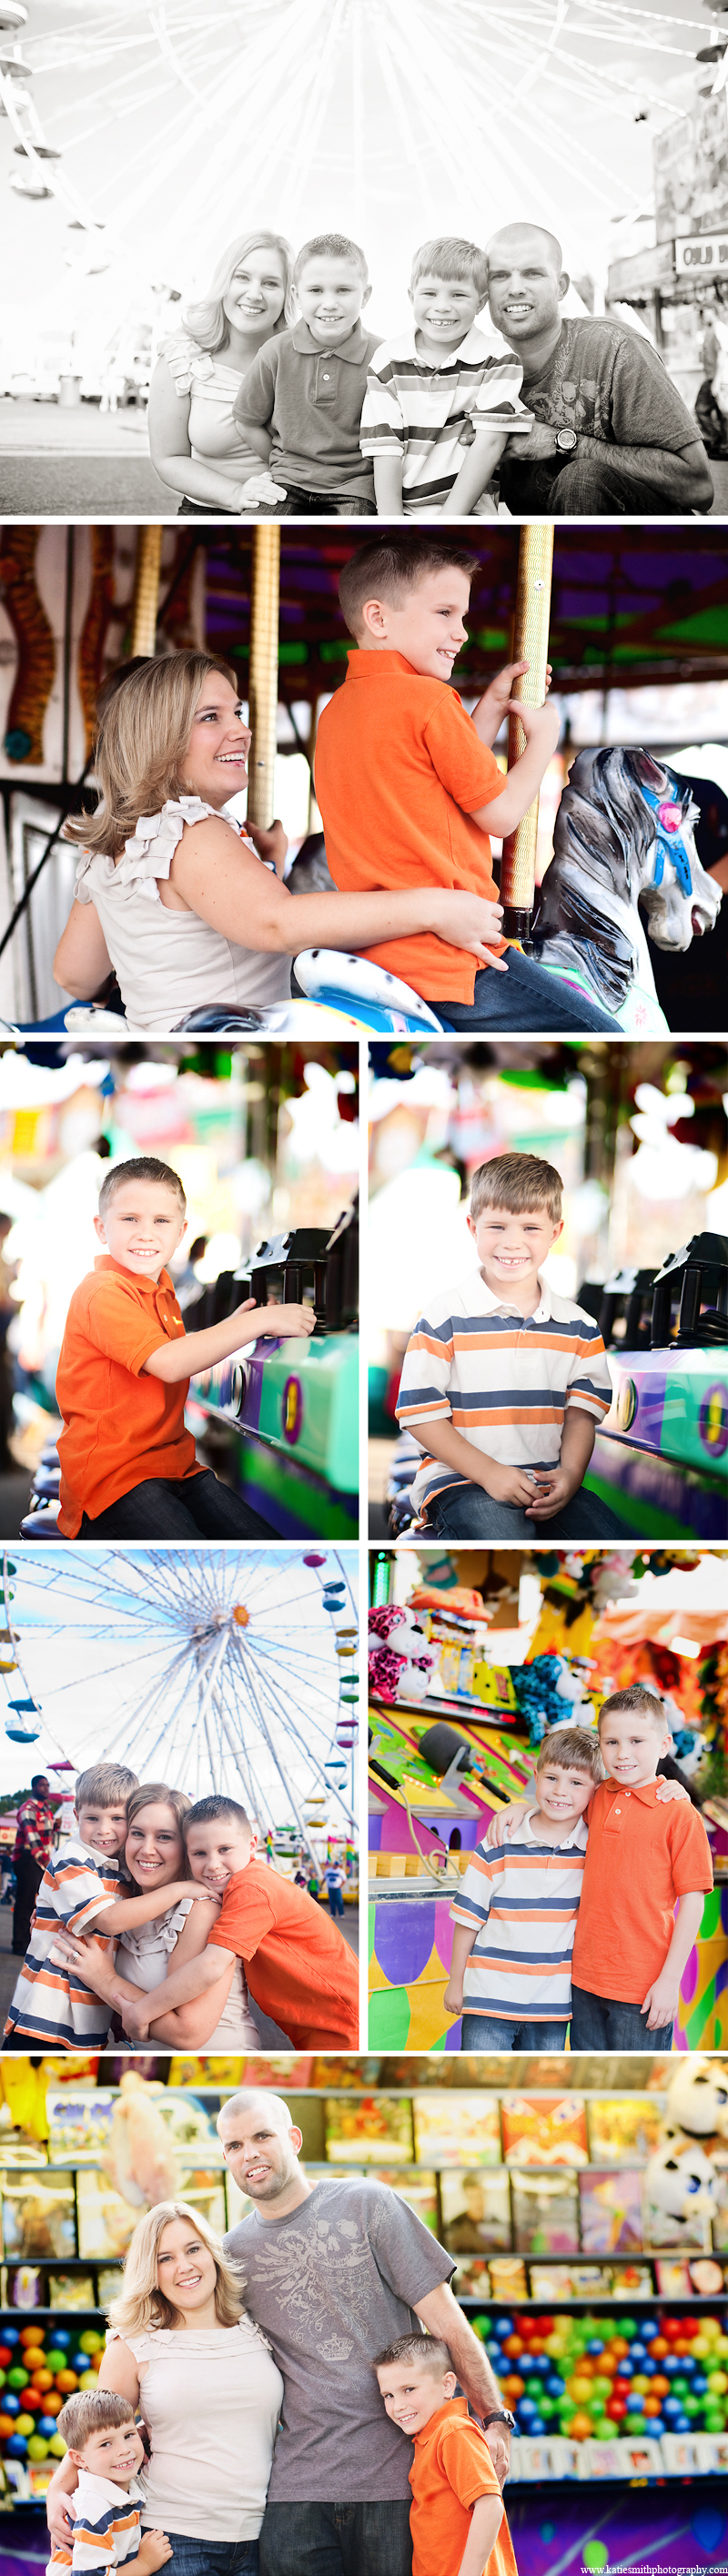 At the Fair- Kernersville Family Photographer